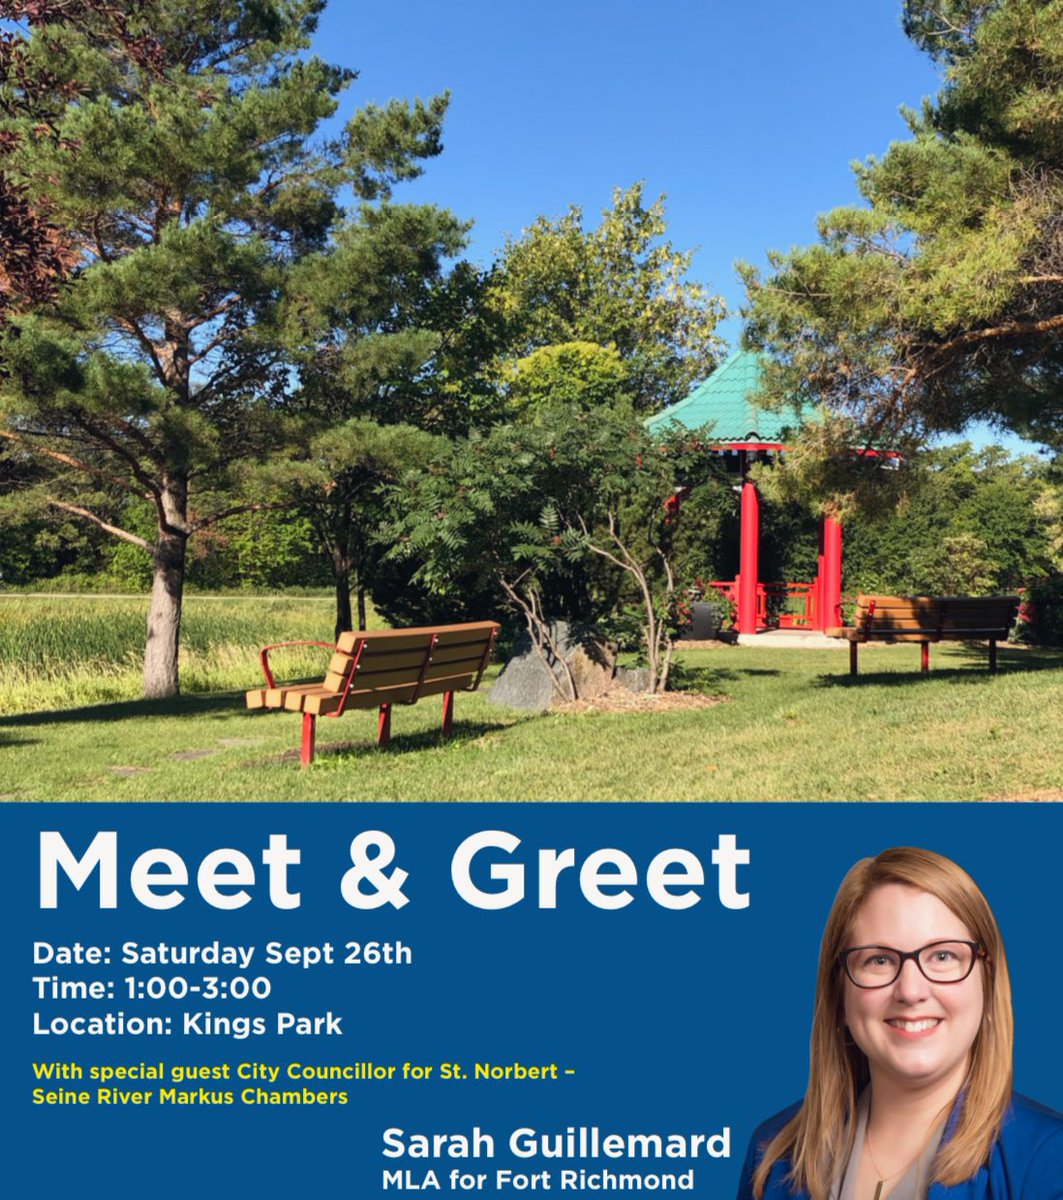 test Twitter Media - Mark your calendars Fort Richmond! I am looking forward to visiting with neighbours & friends along with City Councillor @MarkusAChambers on Saturday, Sept. 26th at King's Park.  Hope to see you there! ☀️🍁🍃🍂 https://t.co/CYqPFSFAt1